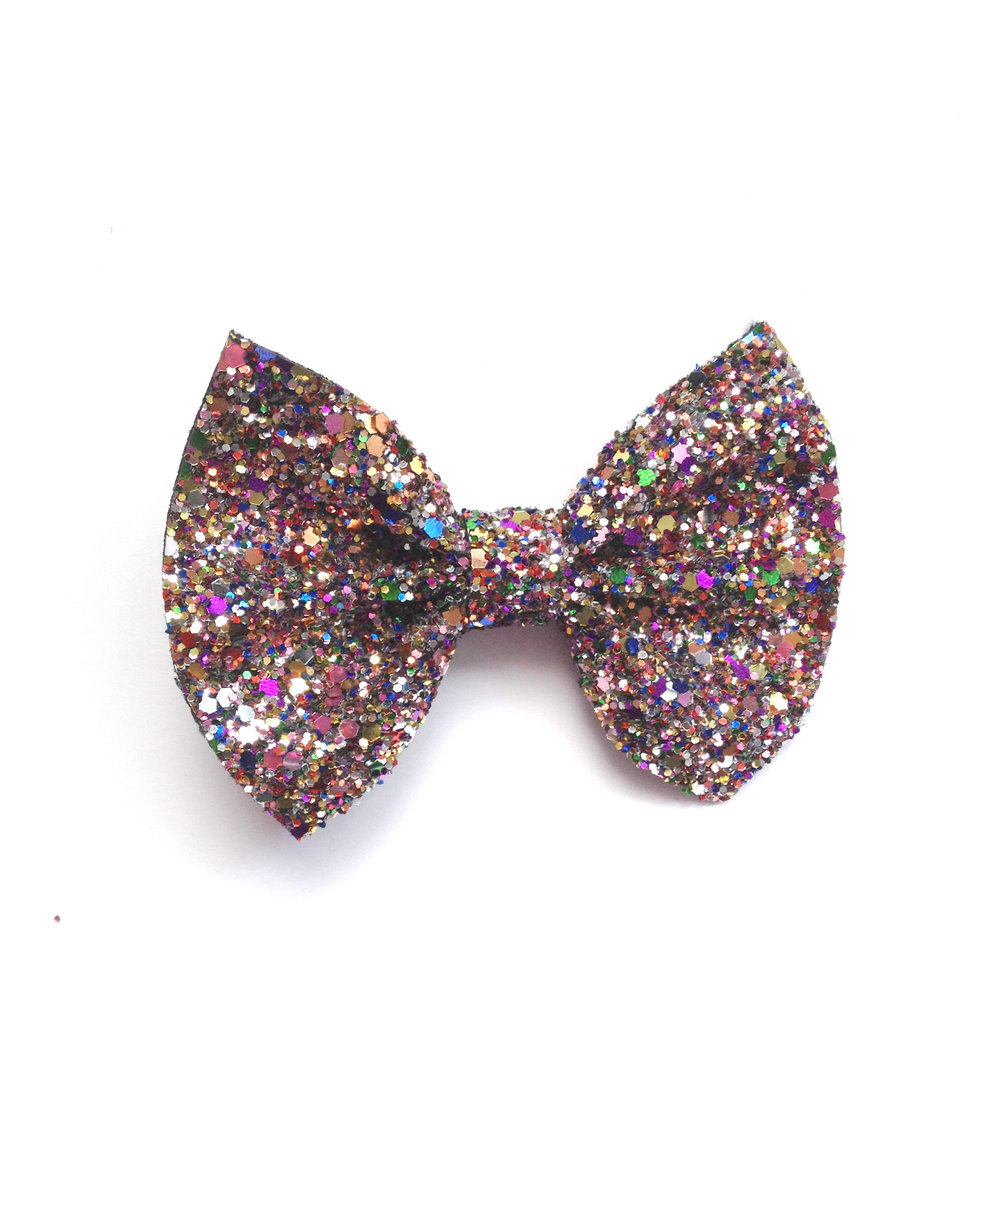 Crown & Glory Small Glitter Bow Hair Clip available in Starry Skies & Kalidescope